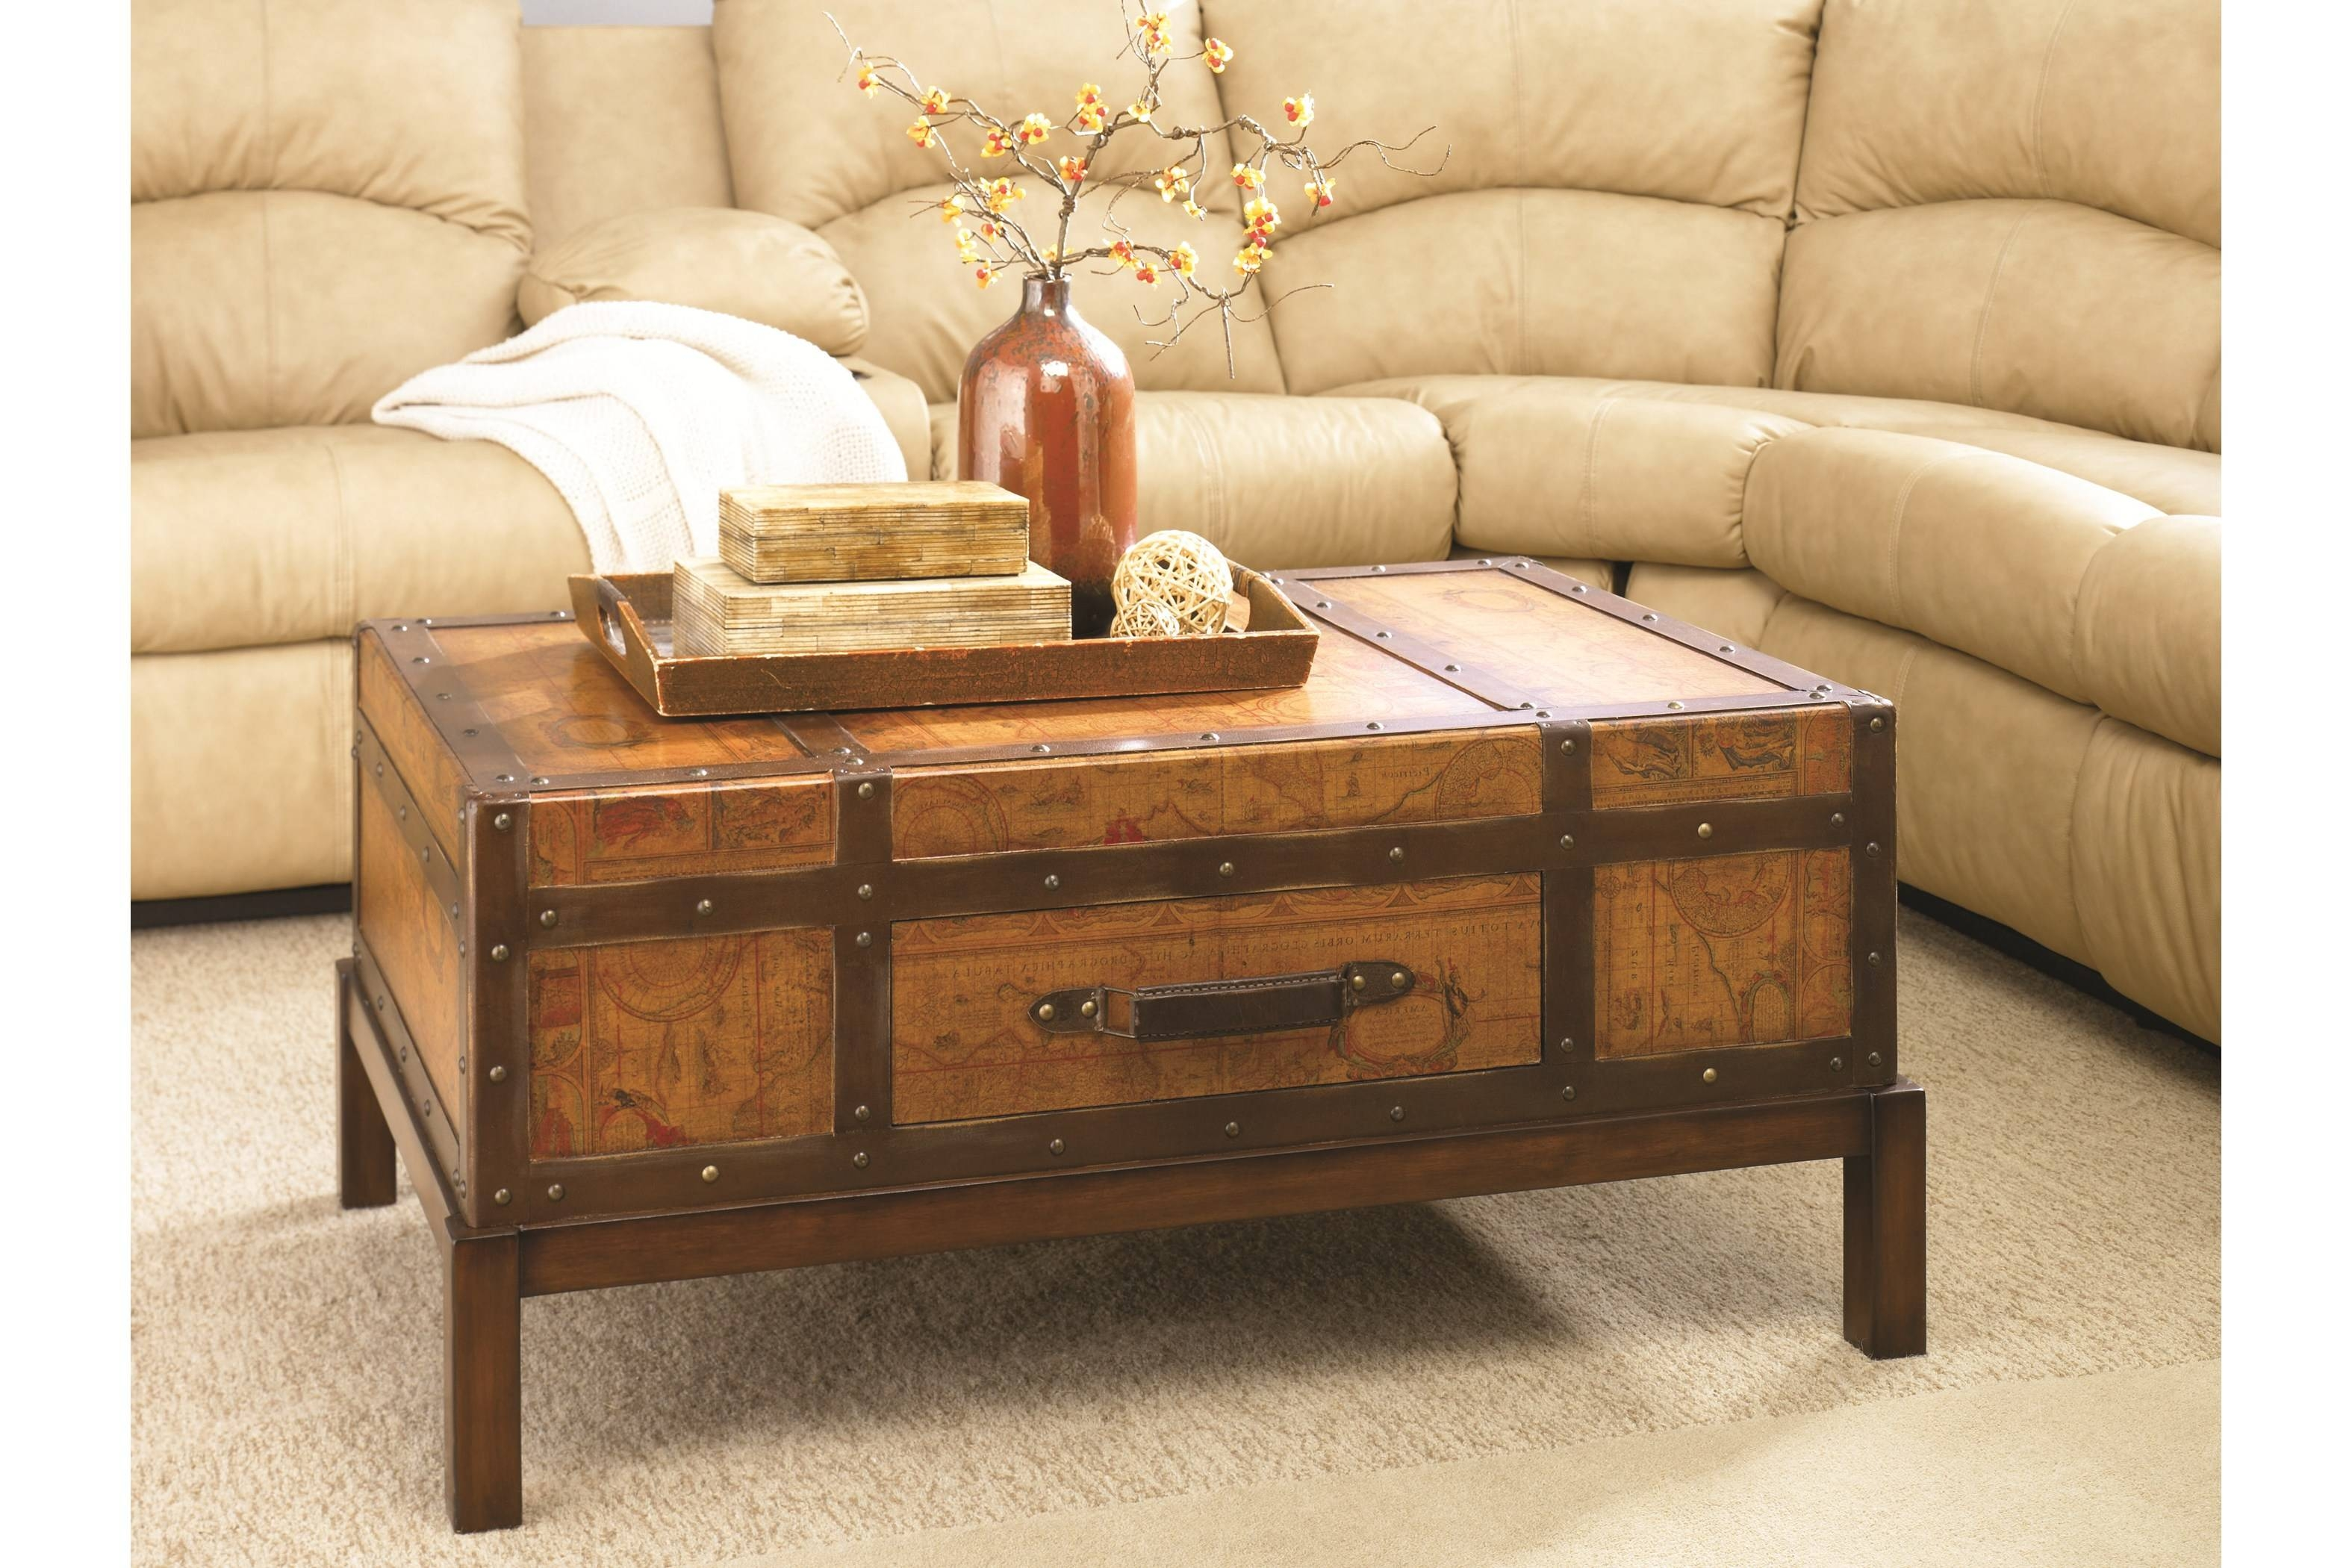 Advertised Peachy Chest Coffee Table – Cedar Chest Coffee Table inside Old Trunks as Coffee Tables (Image 3 of 30)